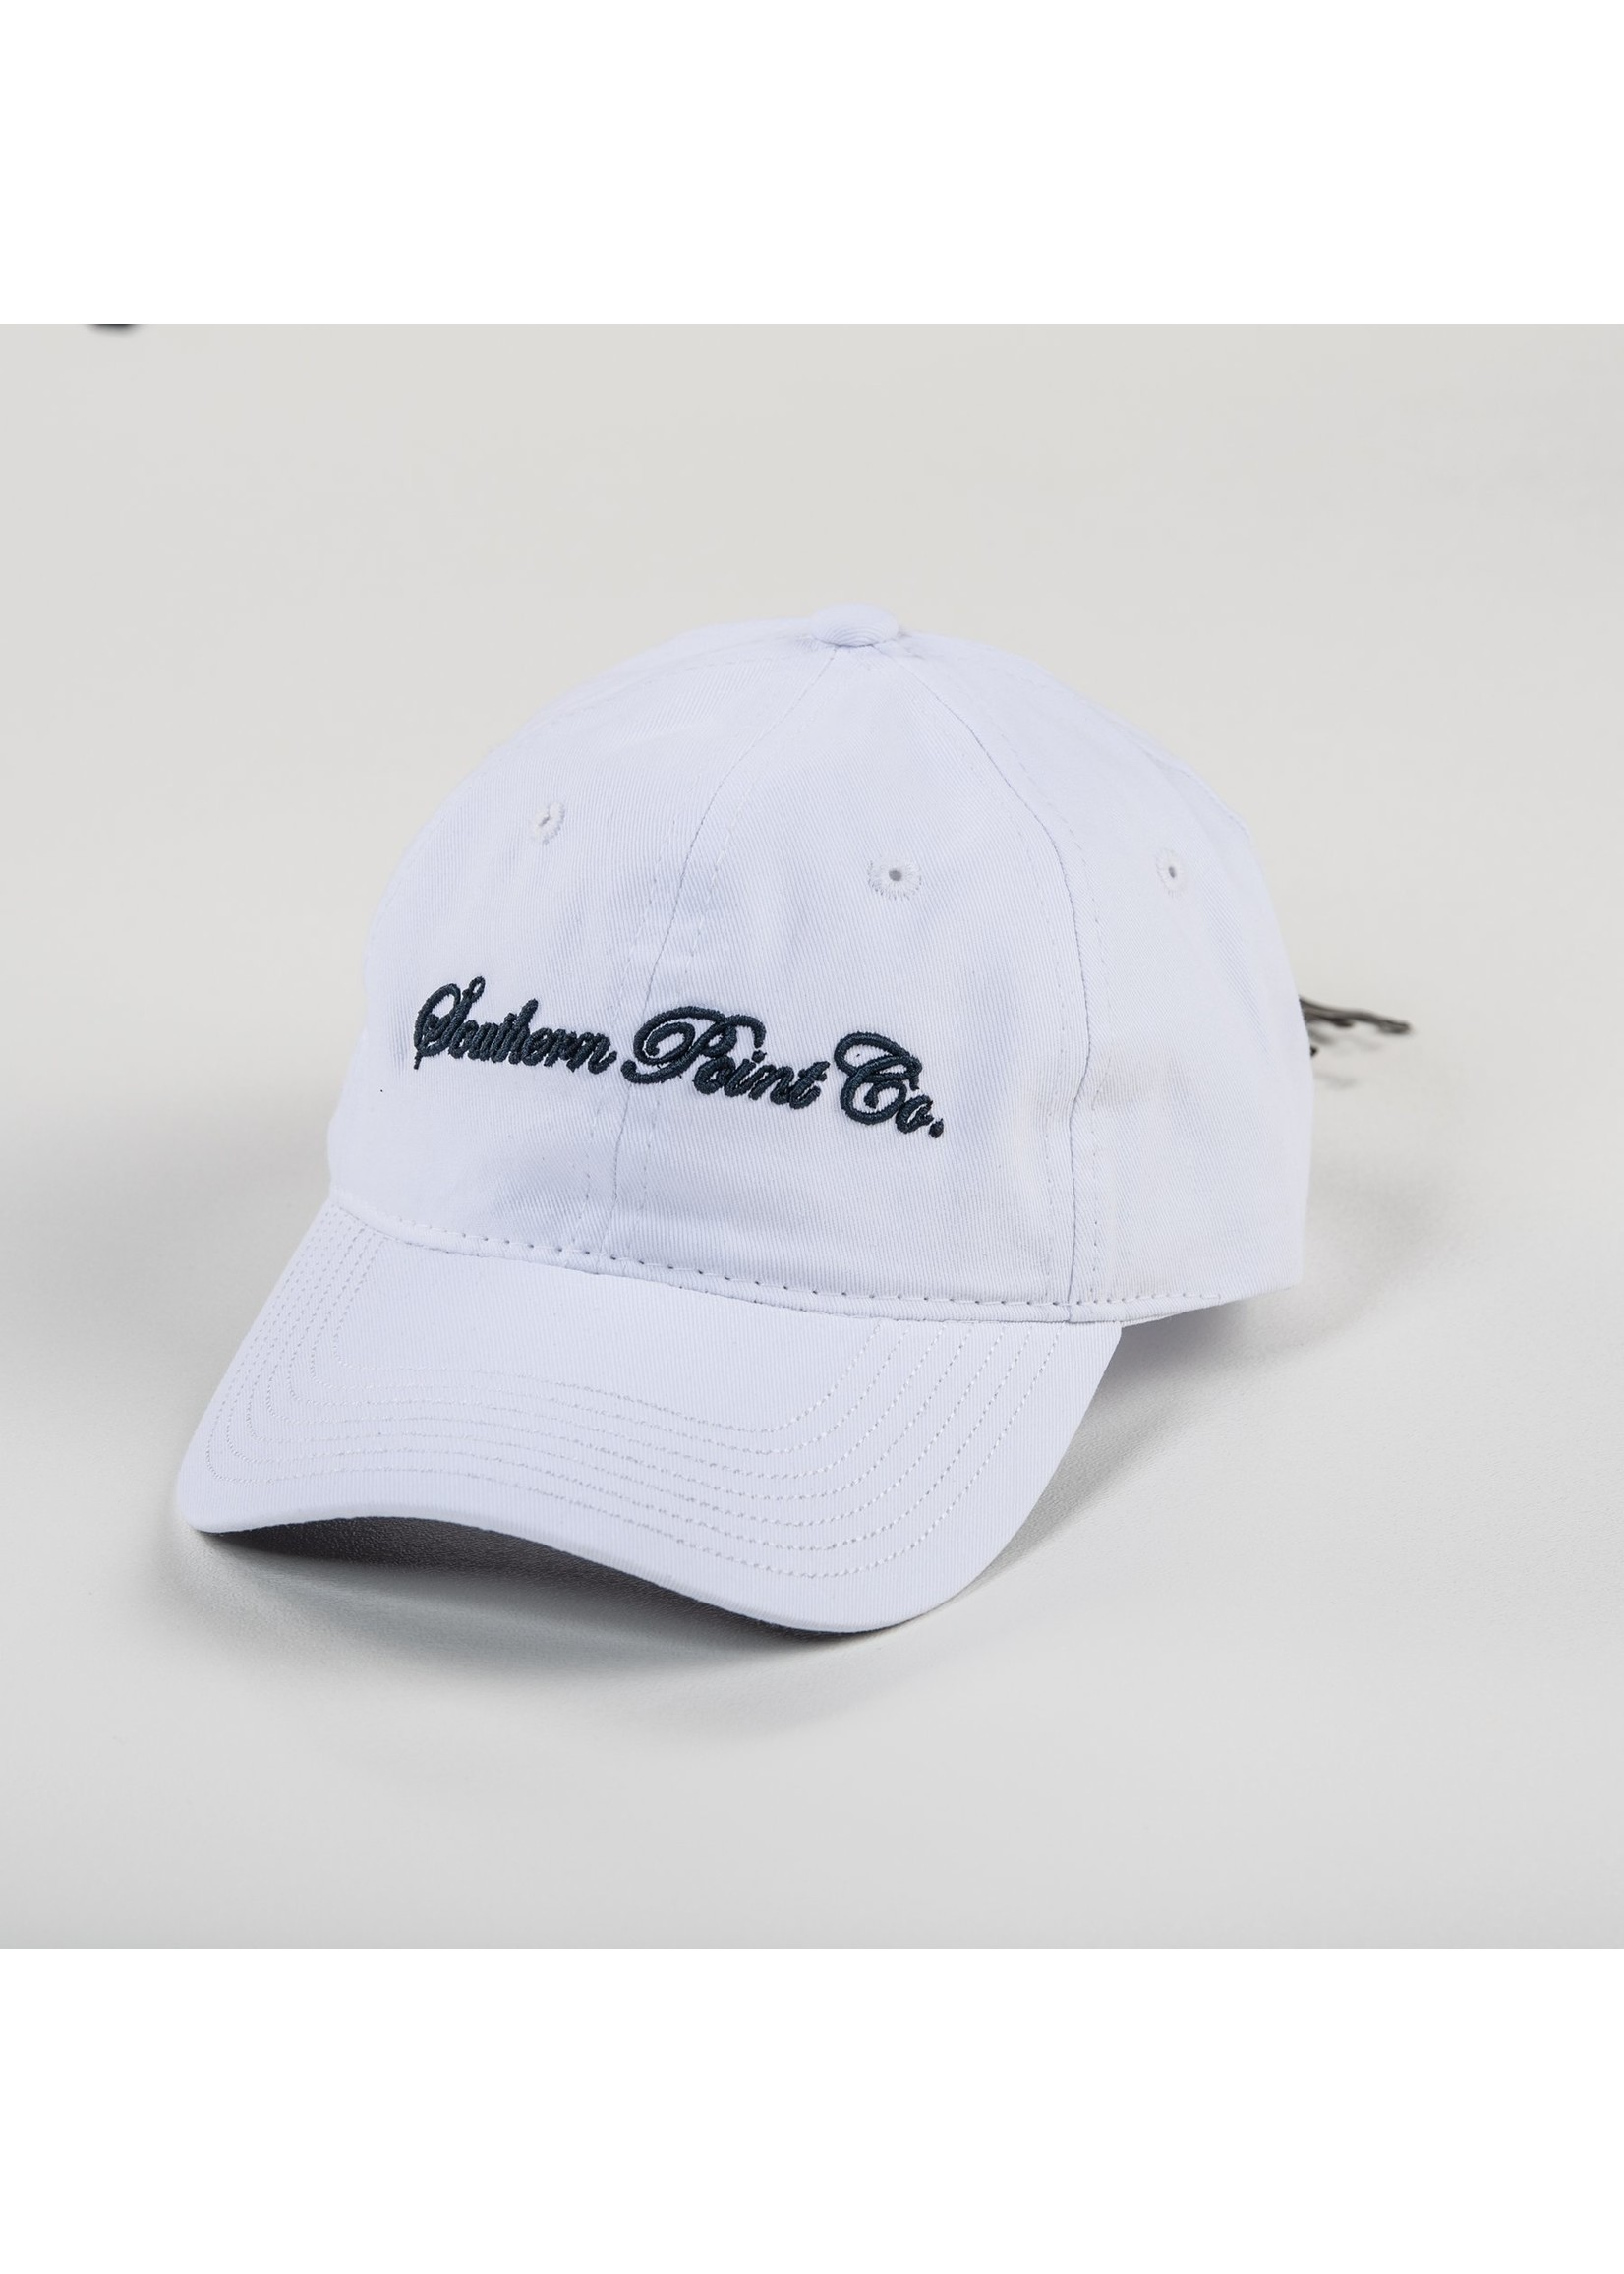 Southern Point Co. Signature Hat Navy Script